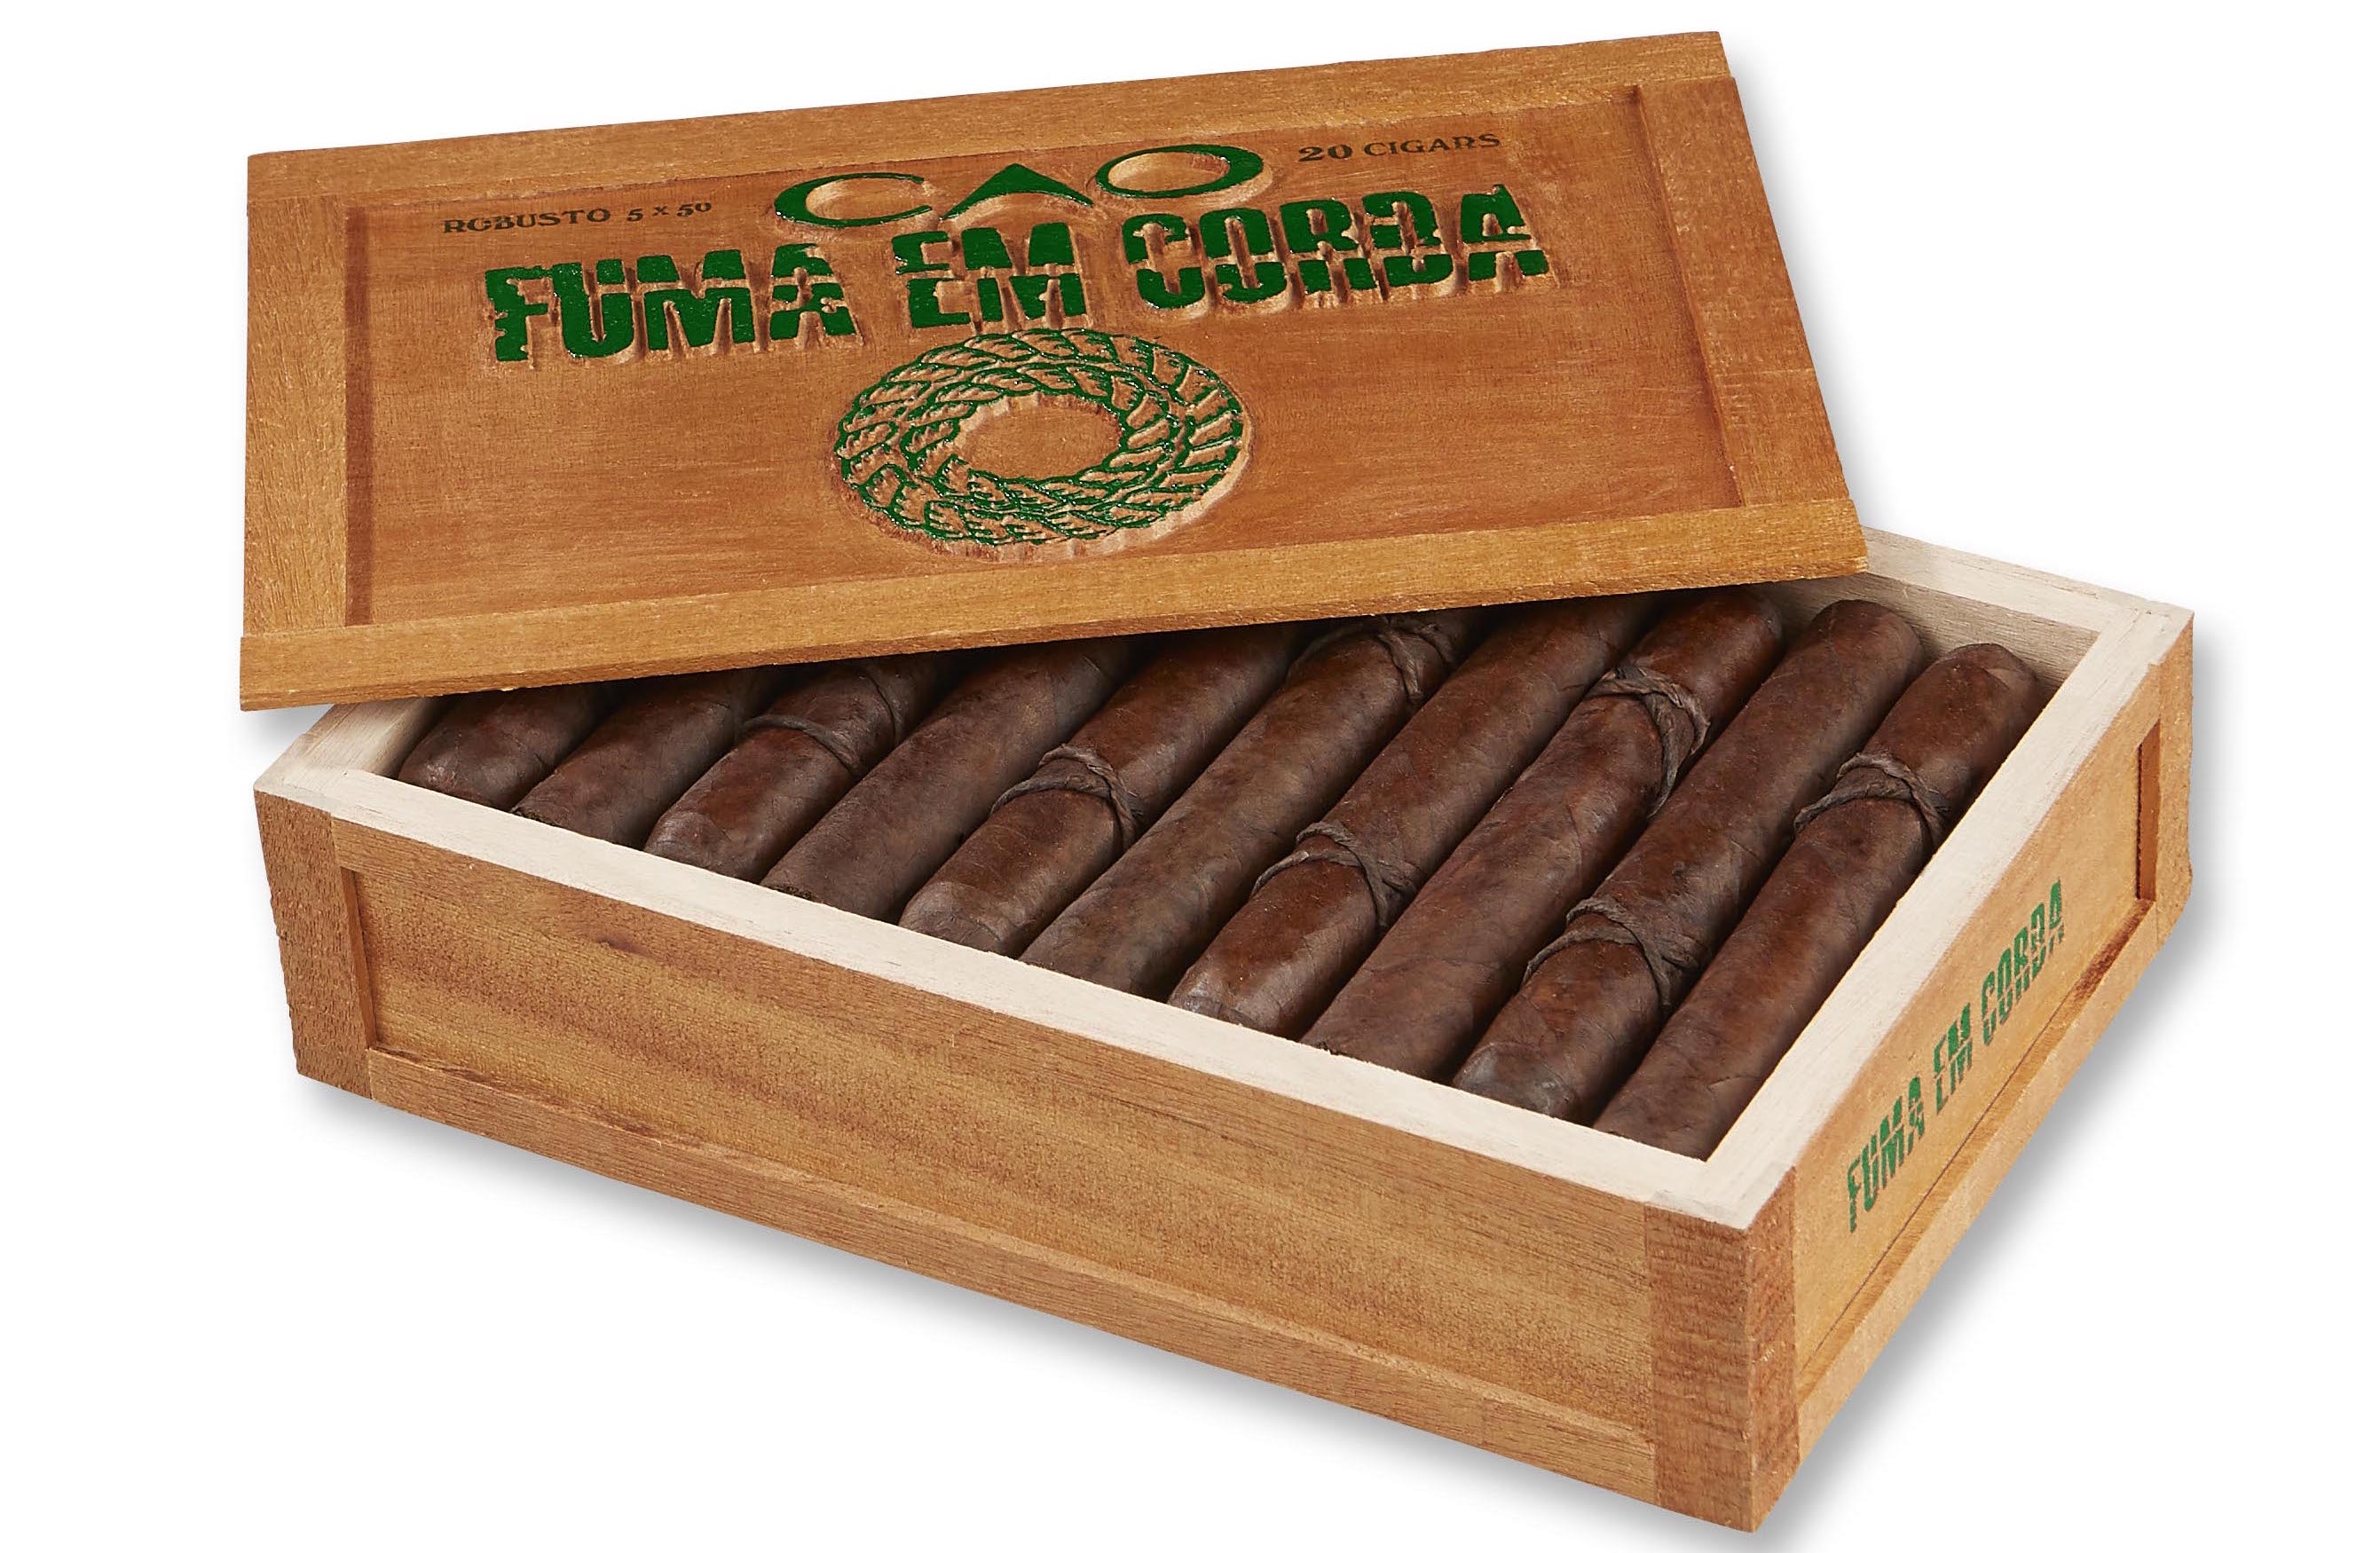 Cigar News: CAO Fuma Em Corda Announced